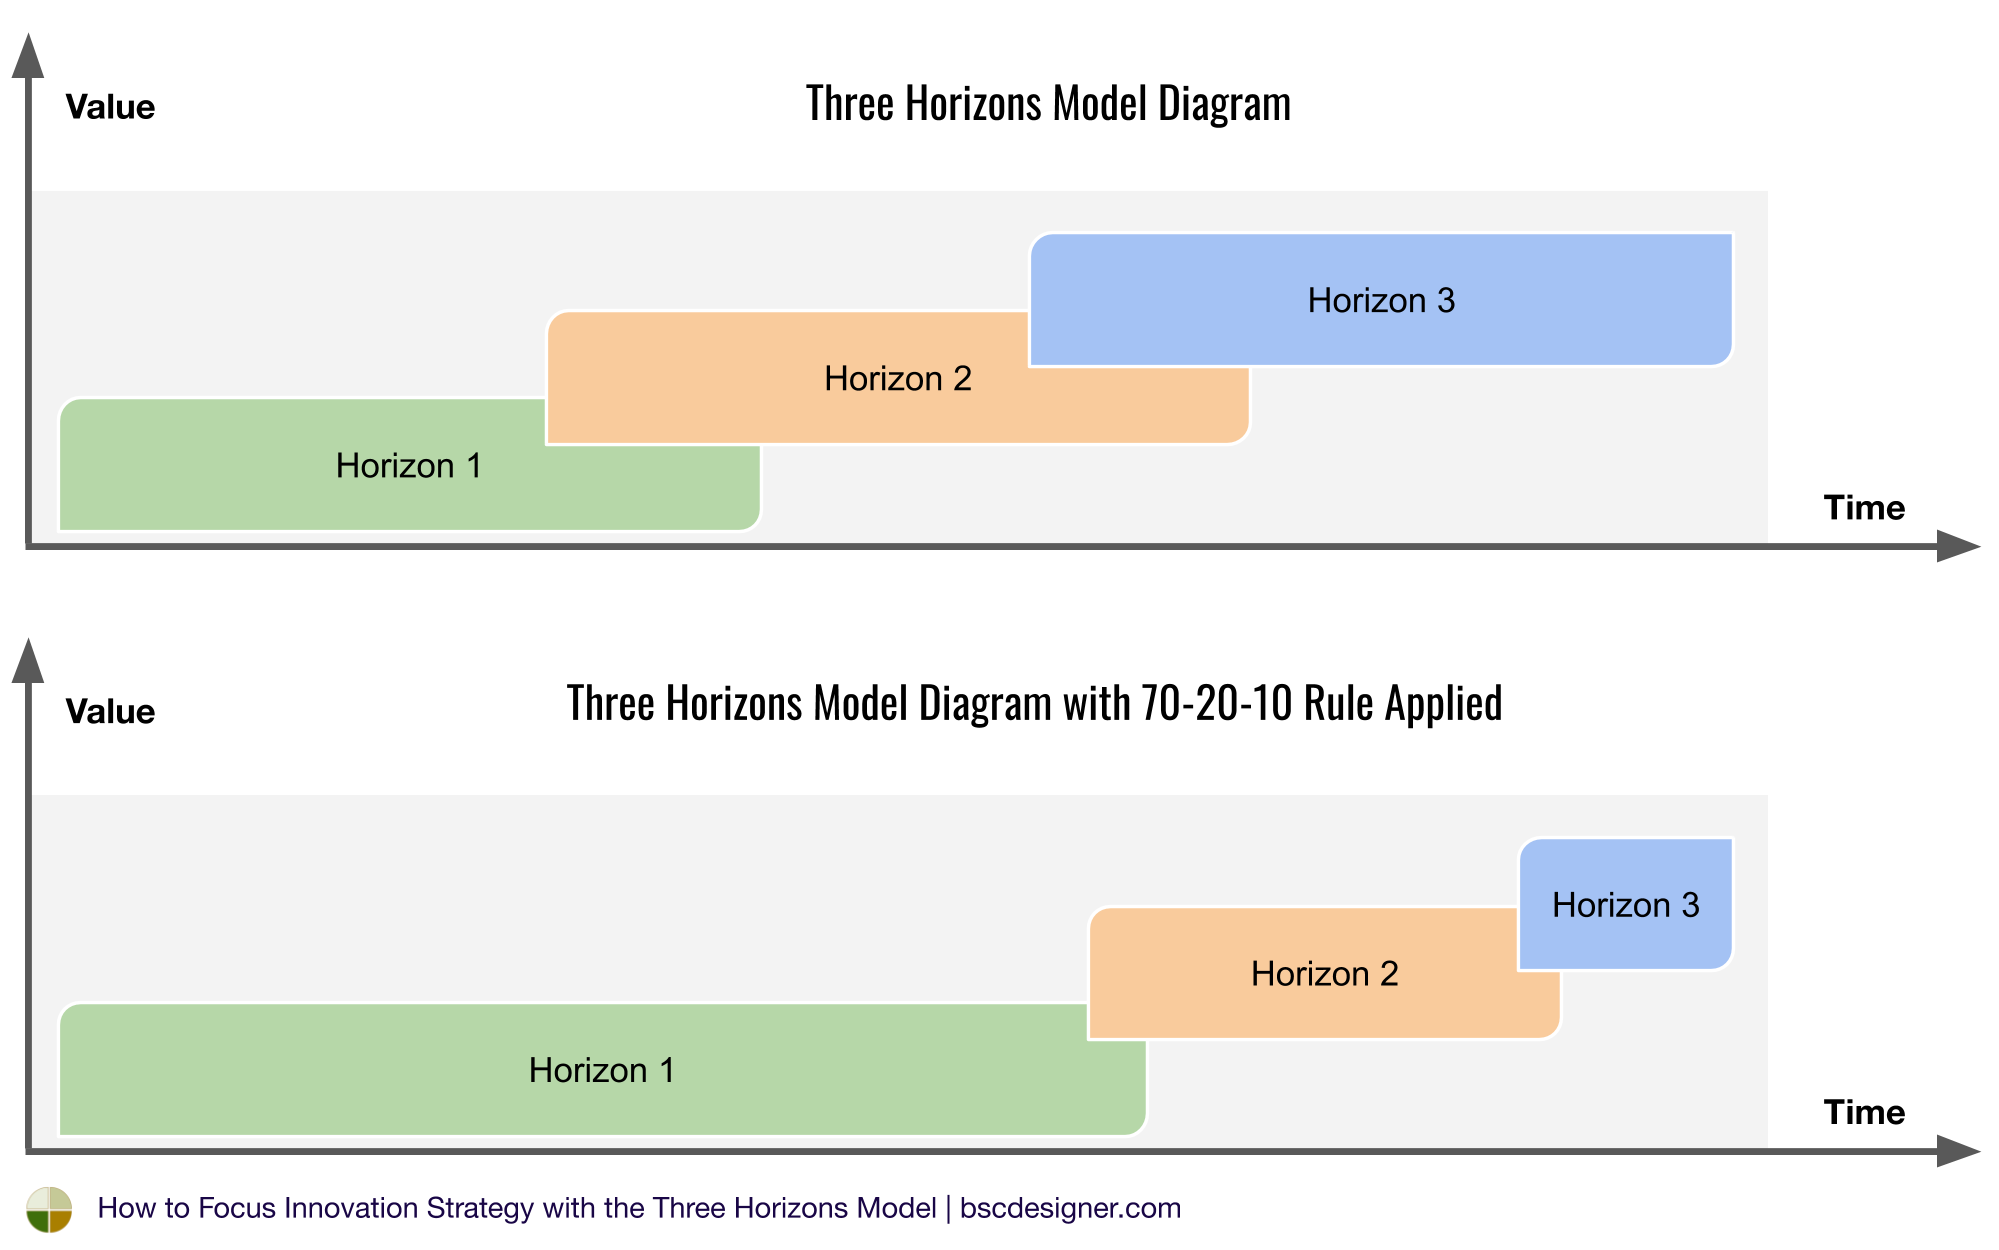 How to Focus Innovation Strategy with the Three Horizons